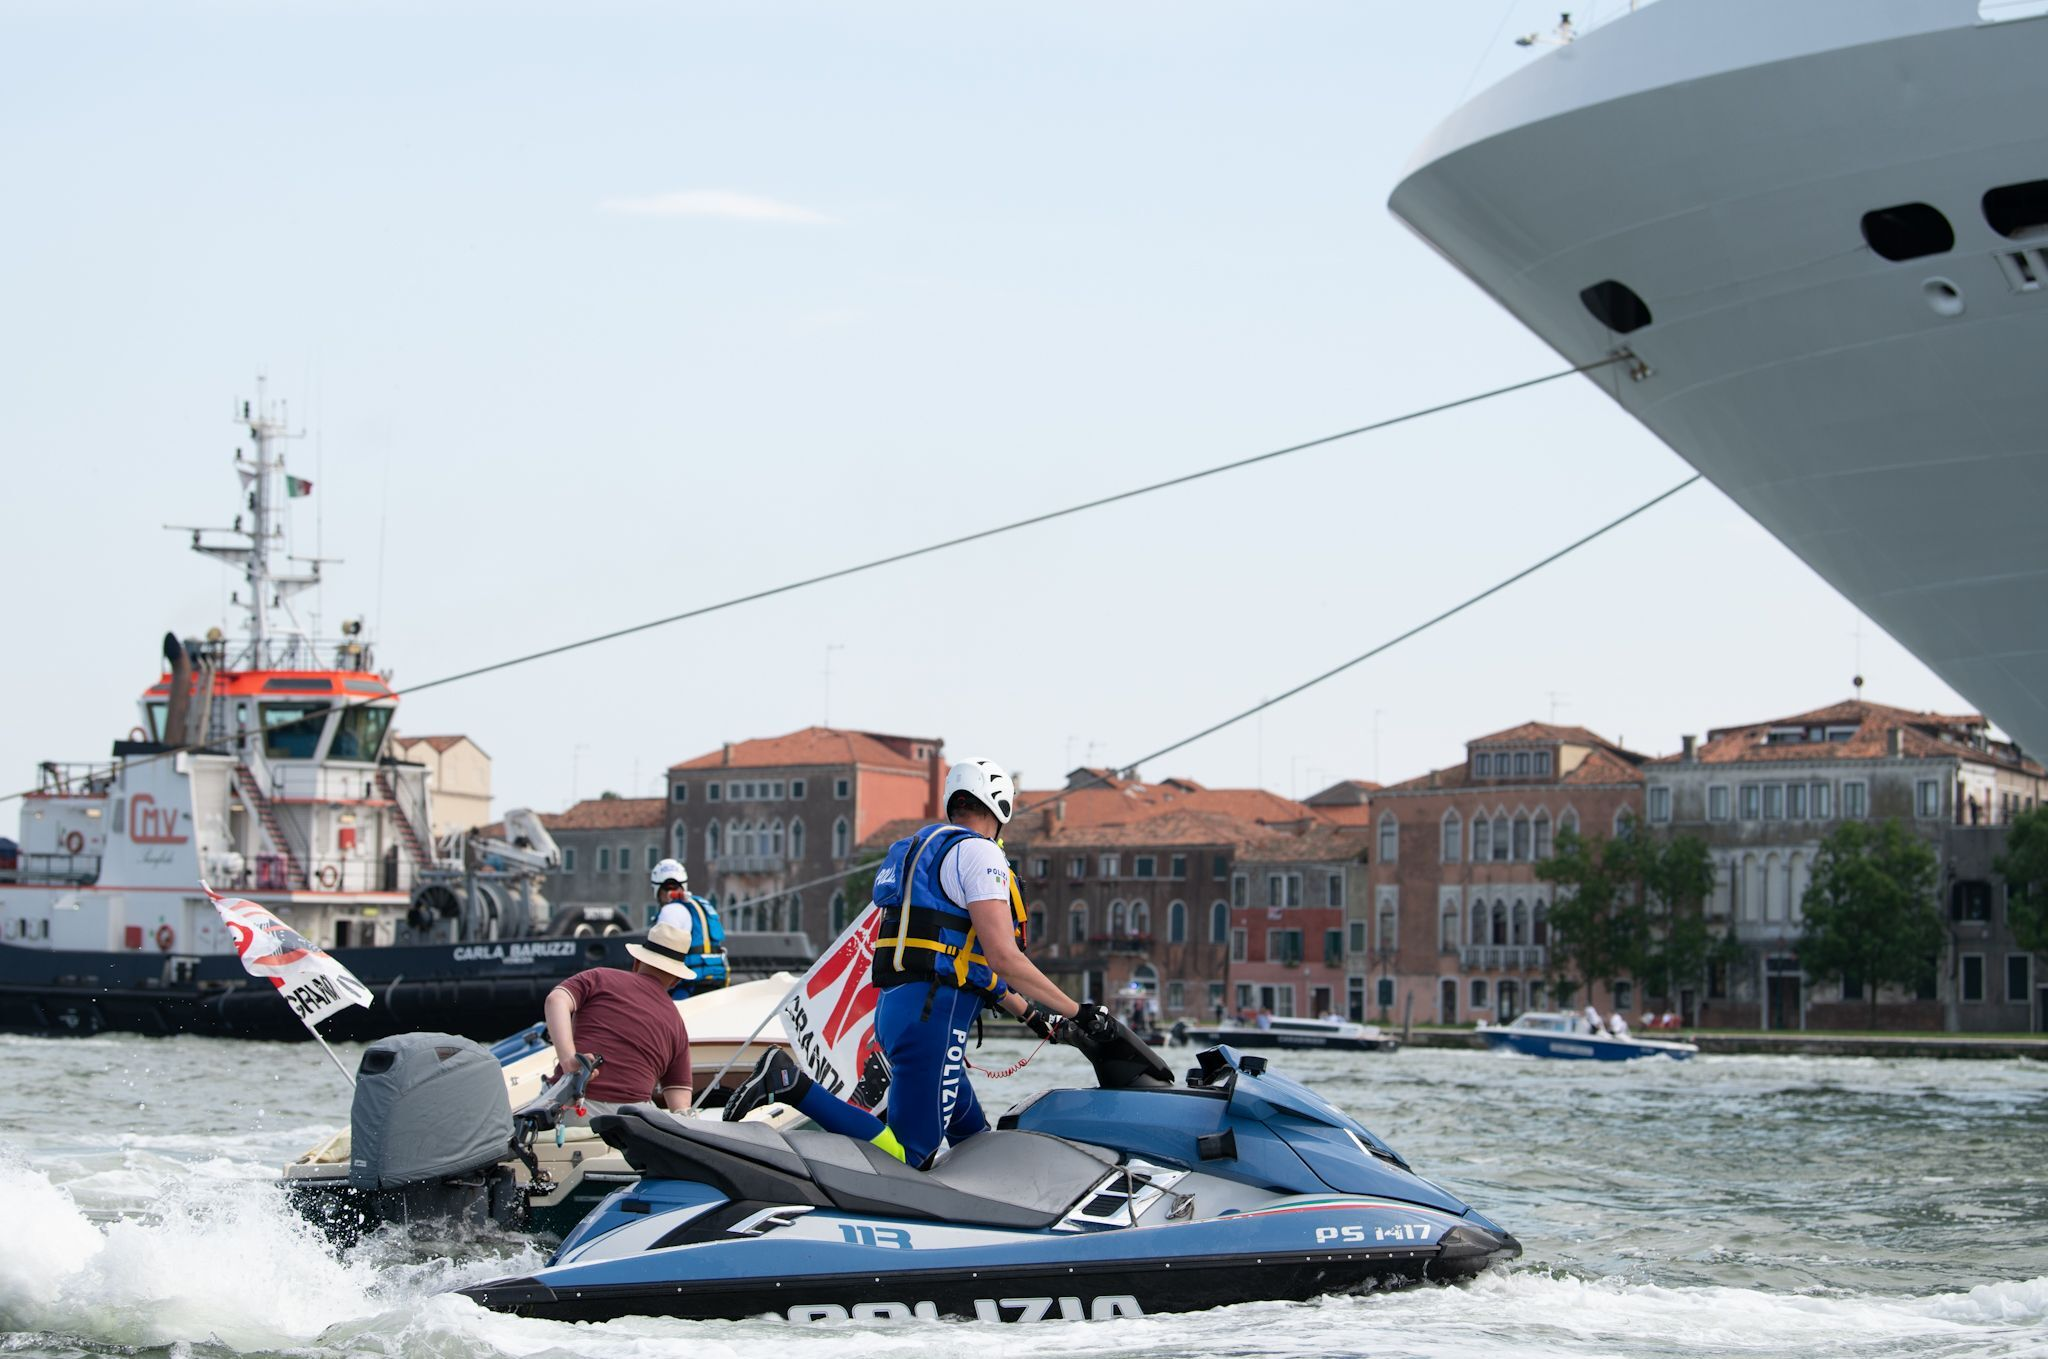 Protest Against Giant Cruise Ships, Venice, Italy - 05 Jun 2021